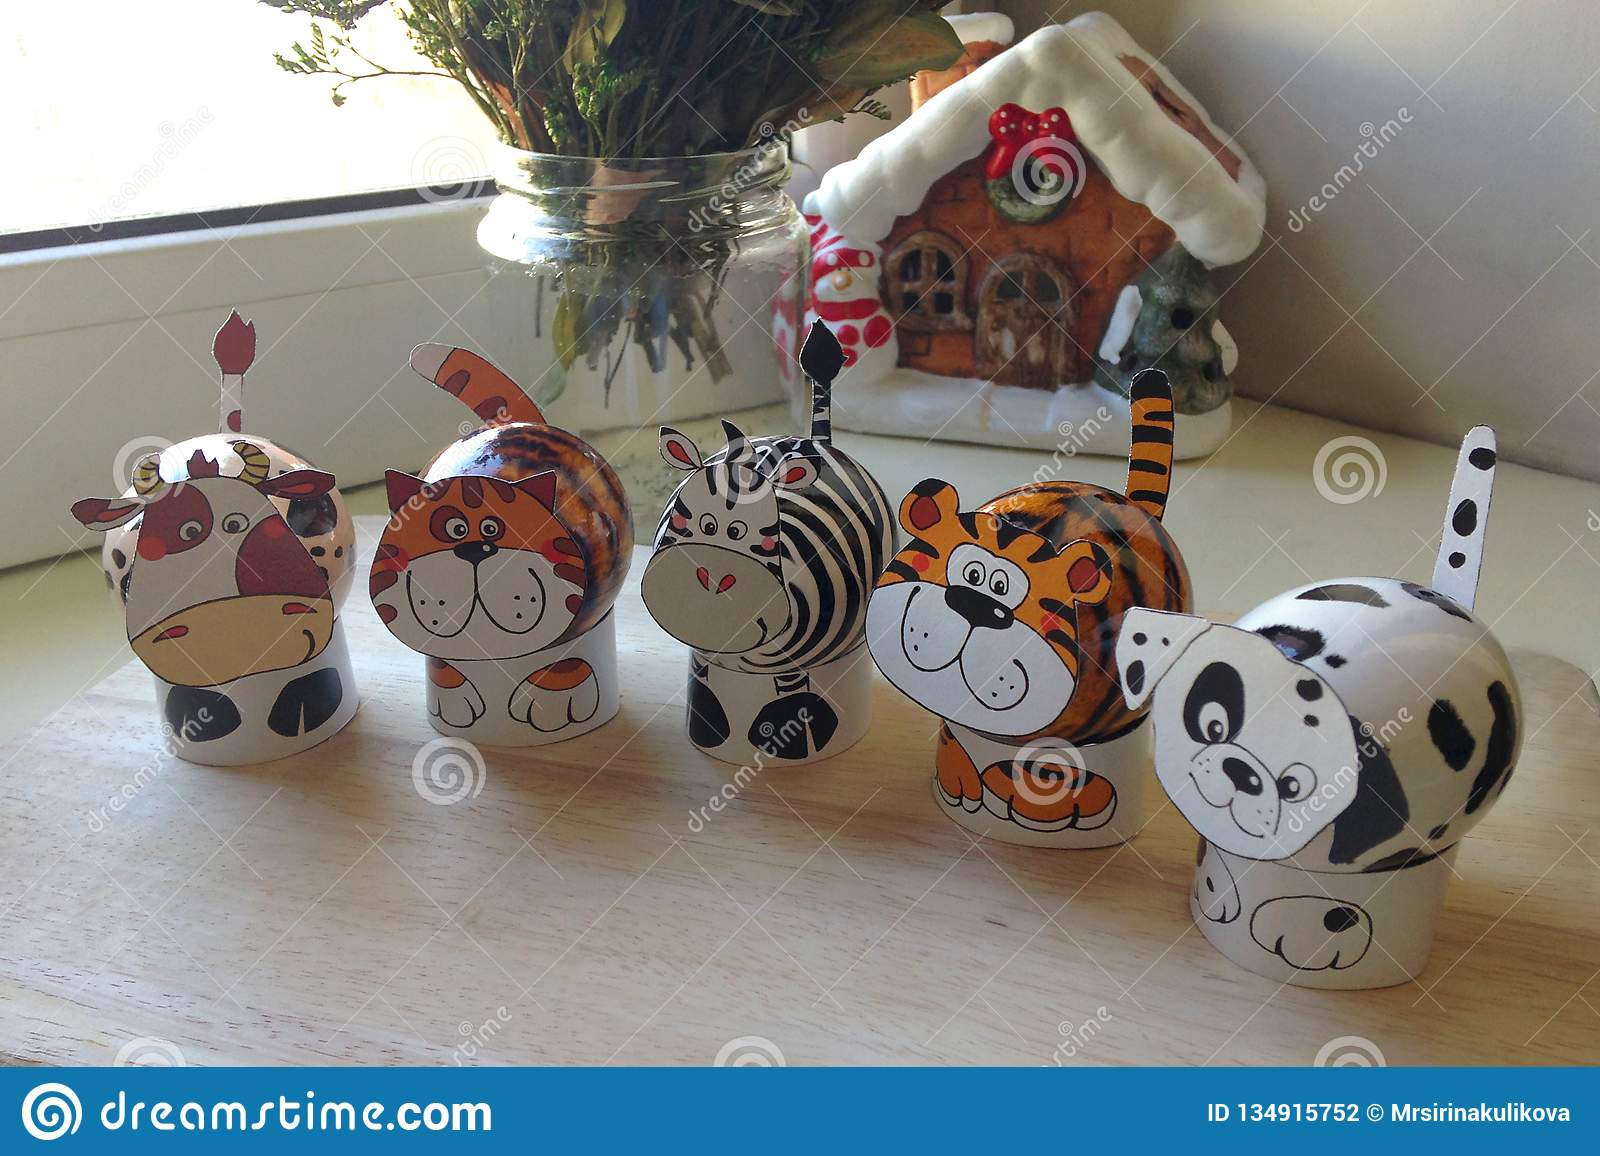 A set of Easter eggs in the form of animals on wooden board. In the background a bouquet of flowers in vase and a house figure